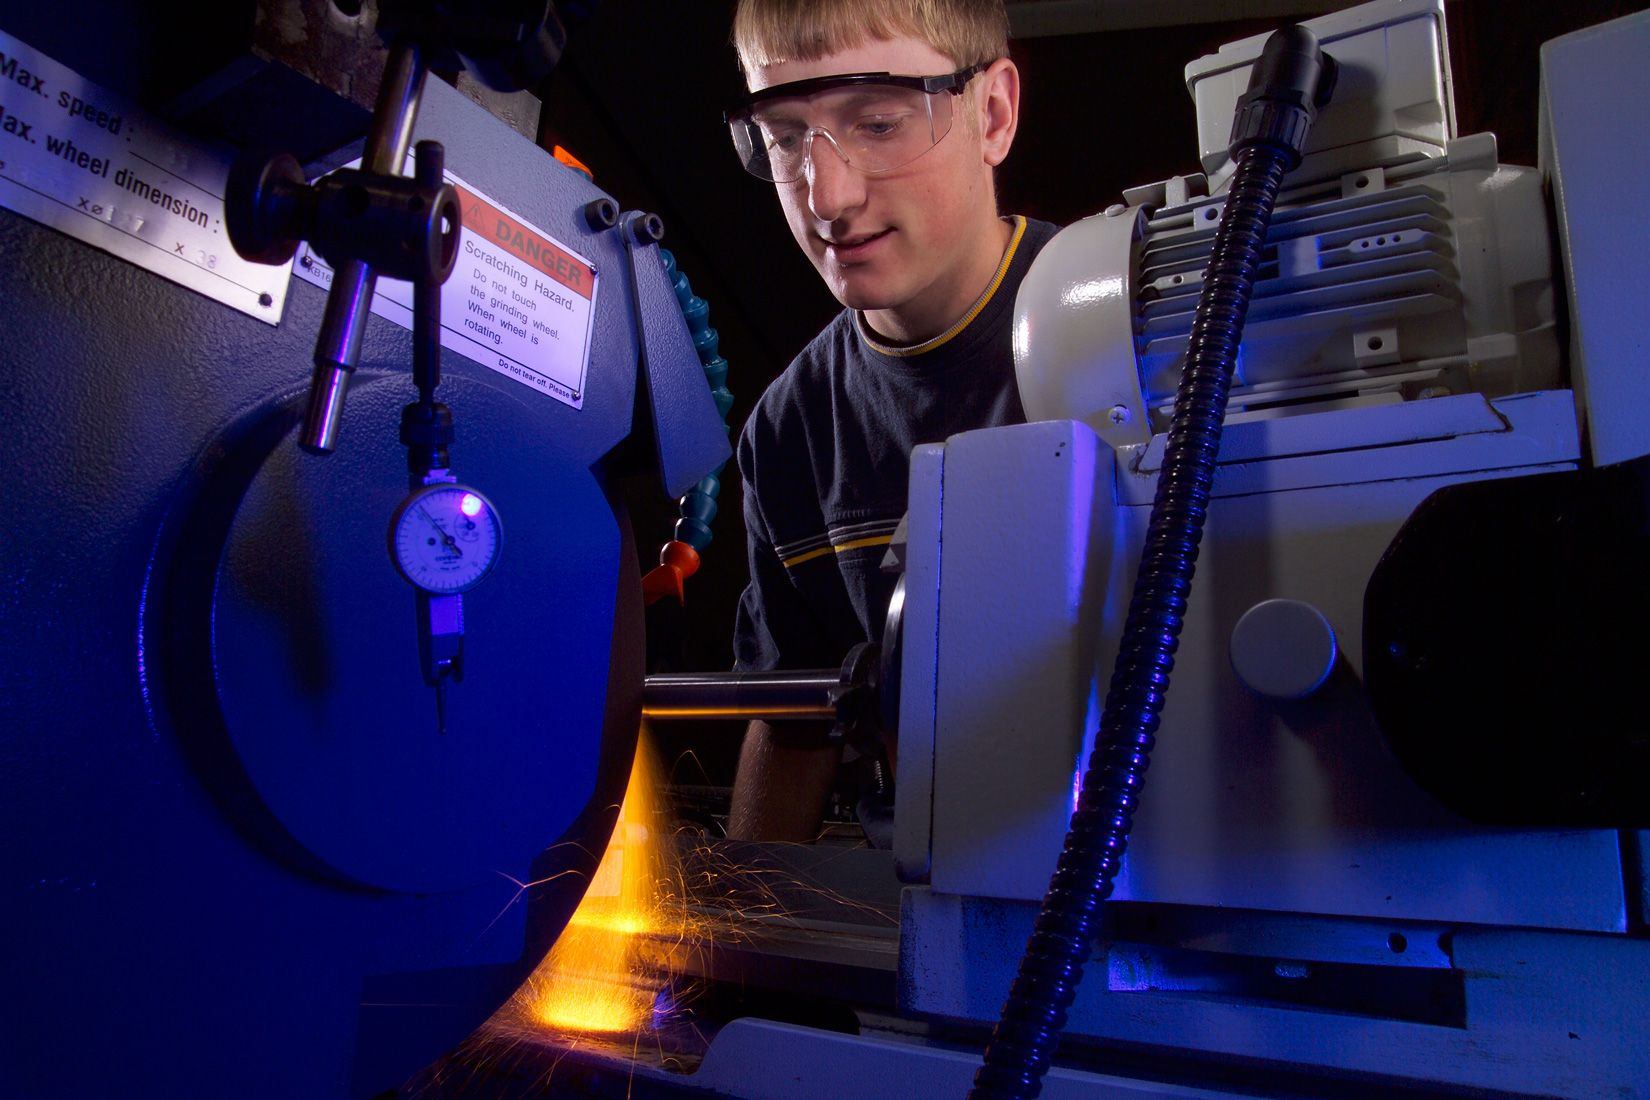 Student using a CNC machine during class at Hawkeye Community College